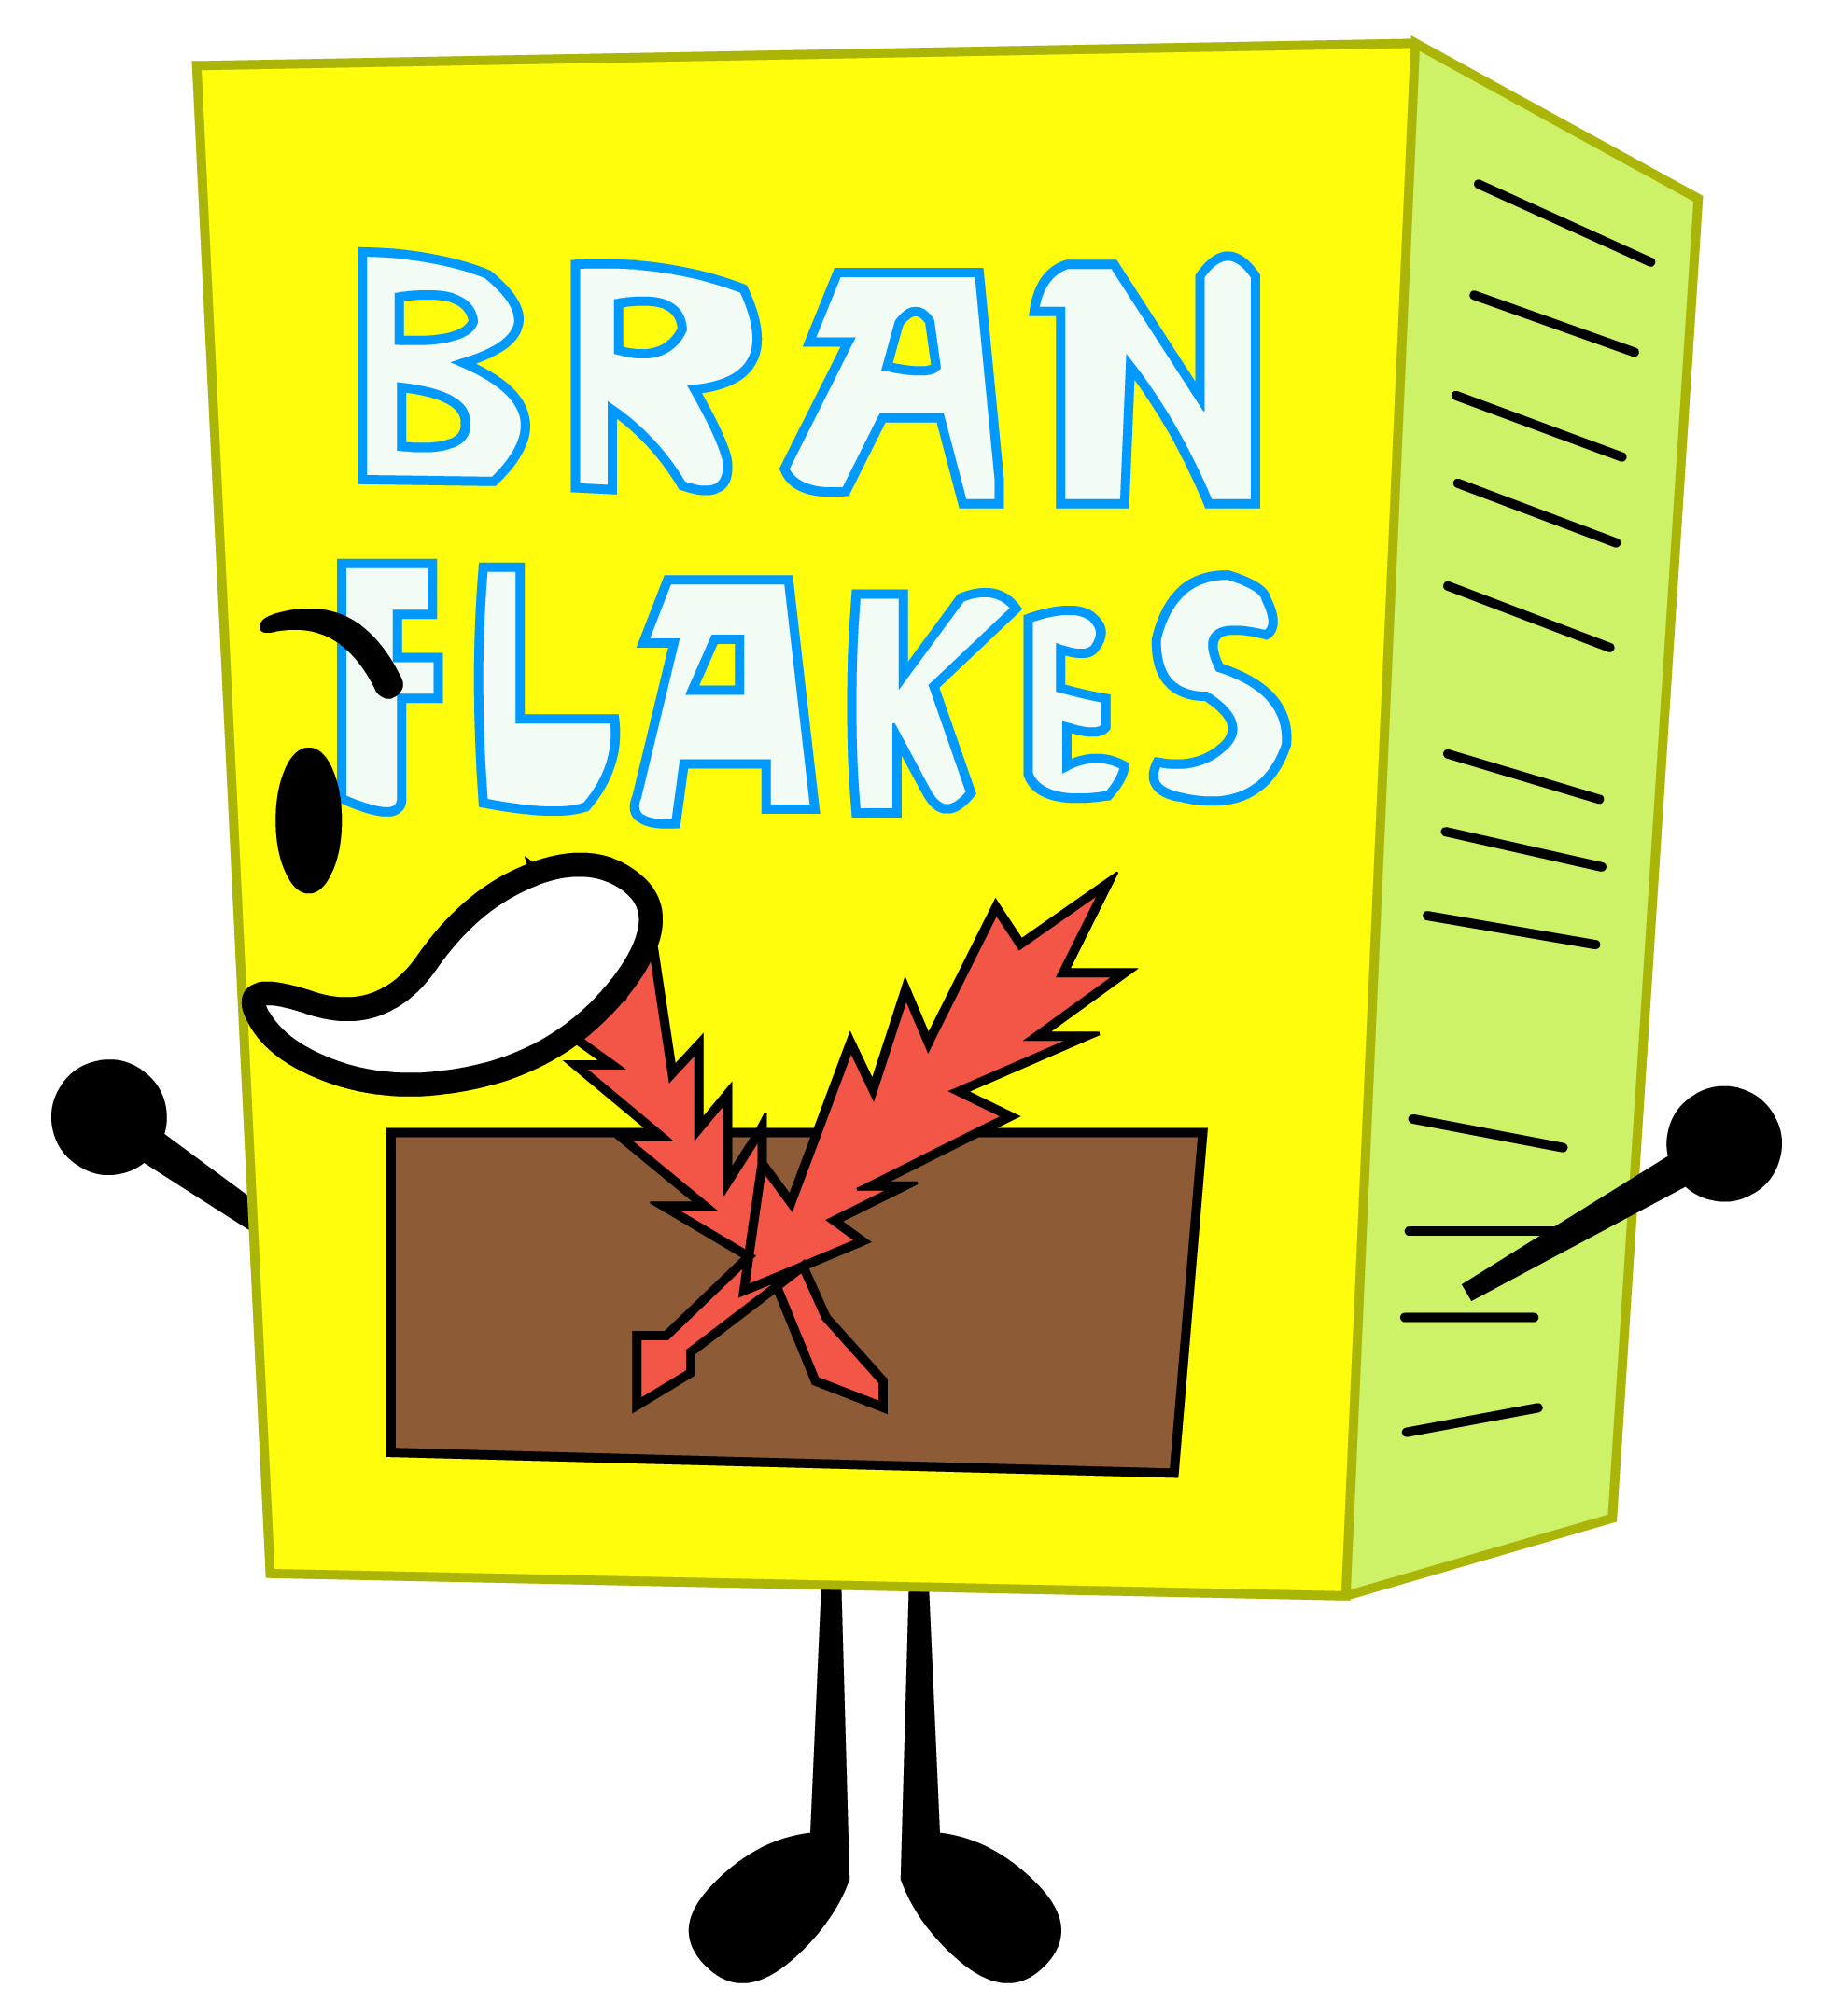 Cereal box png clipart. Image pose object shows